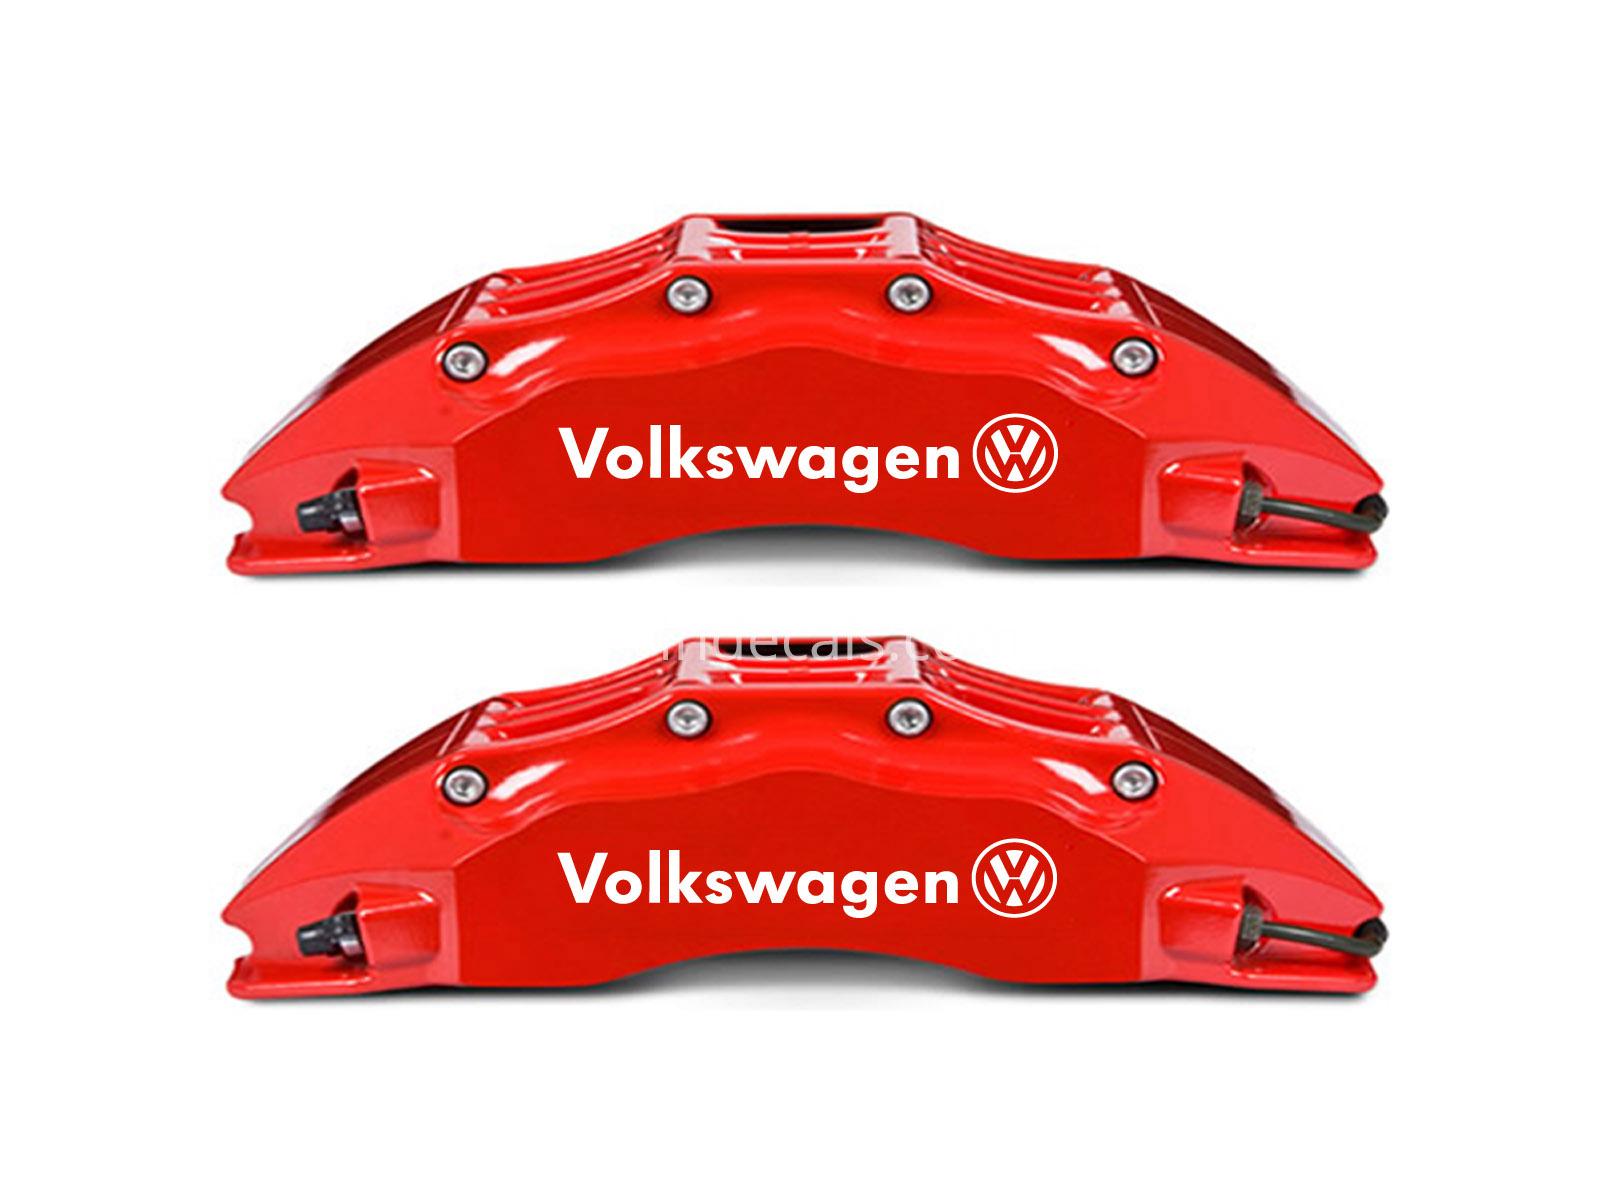 6 x Volkswagen Stickers for Brakes - White